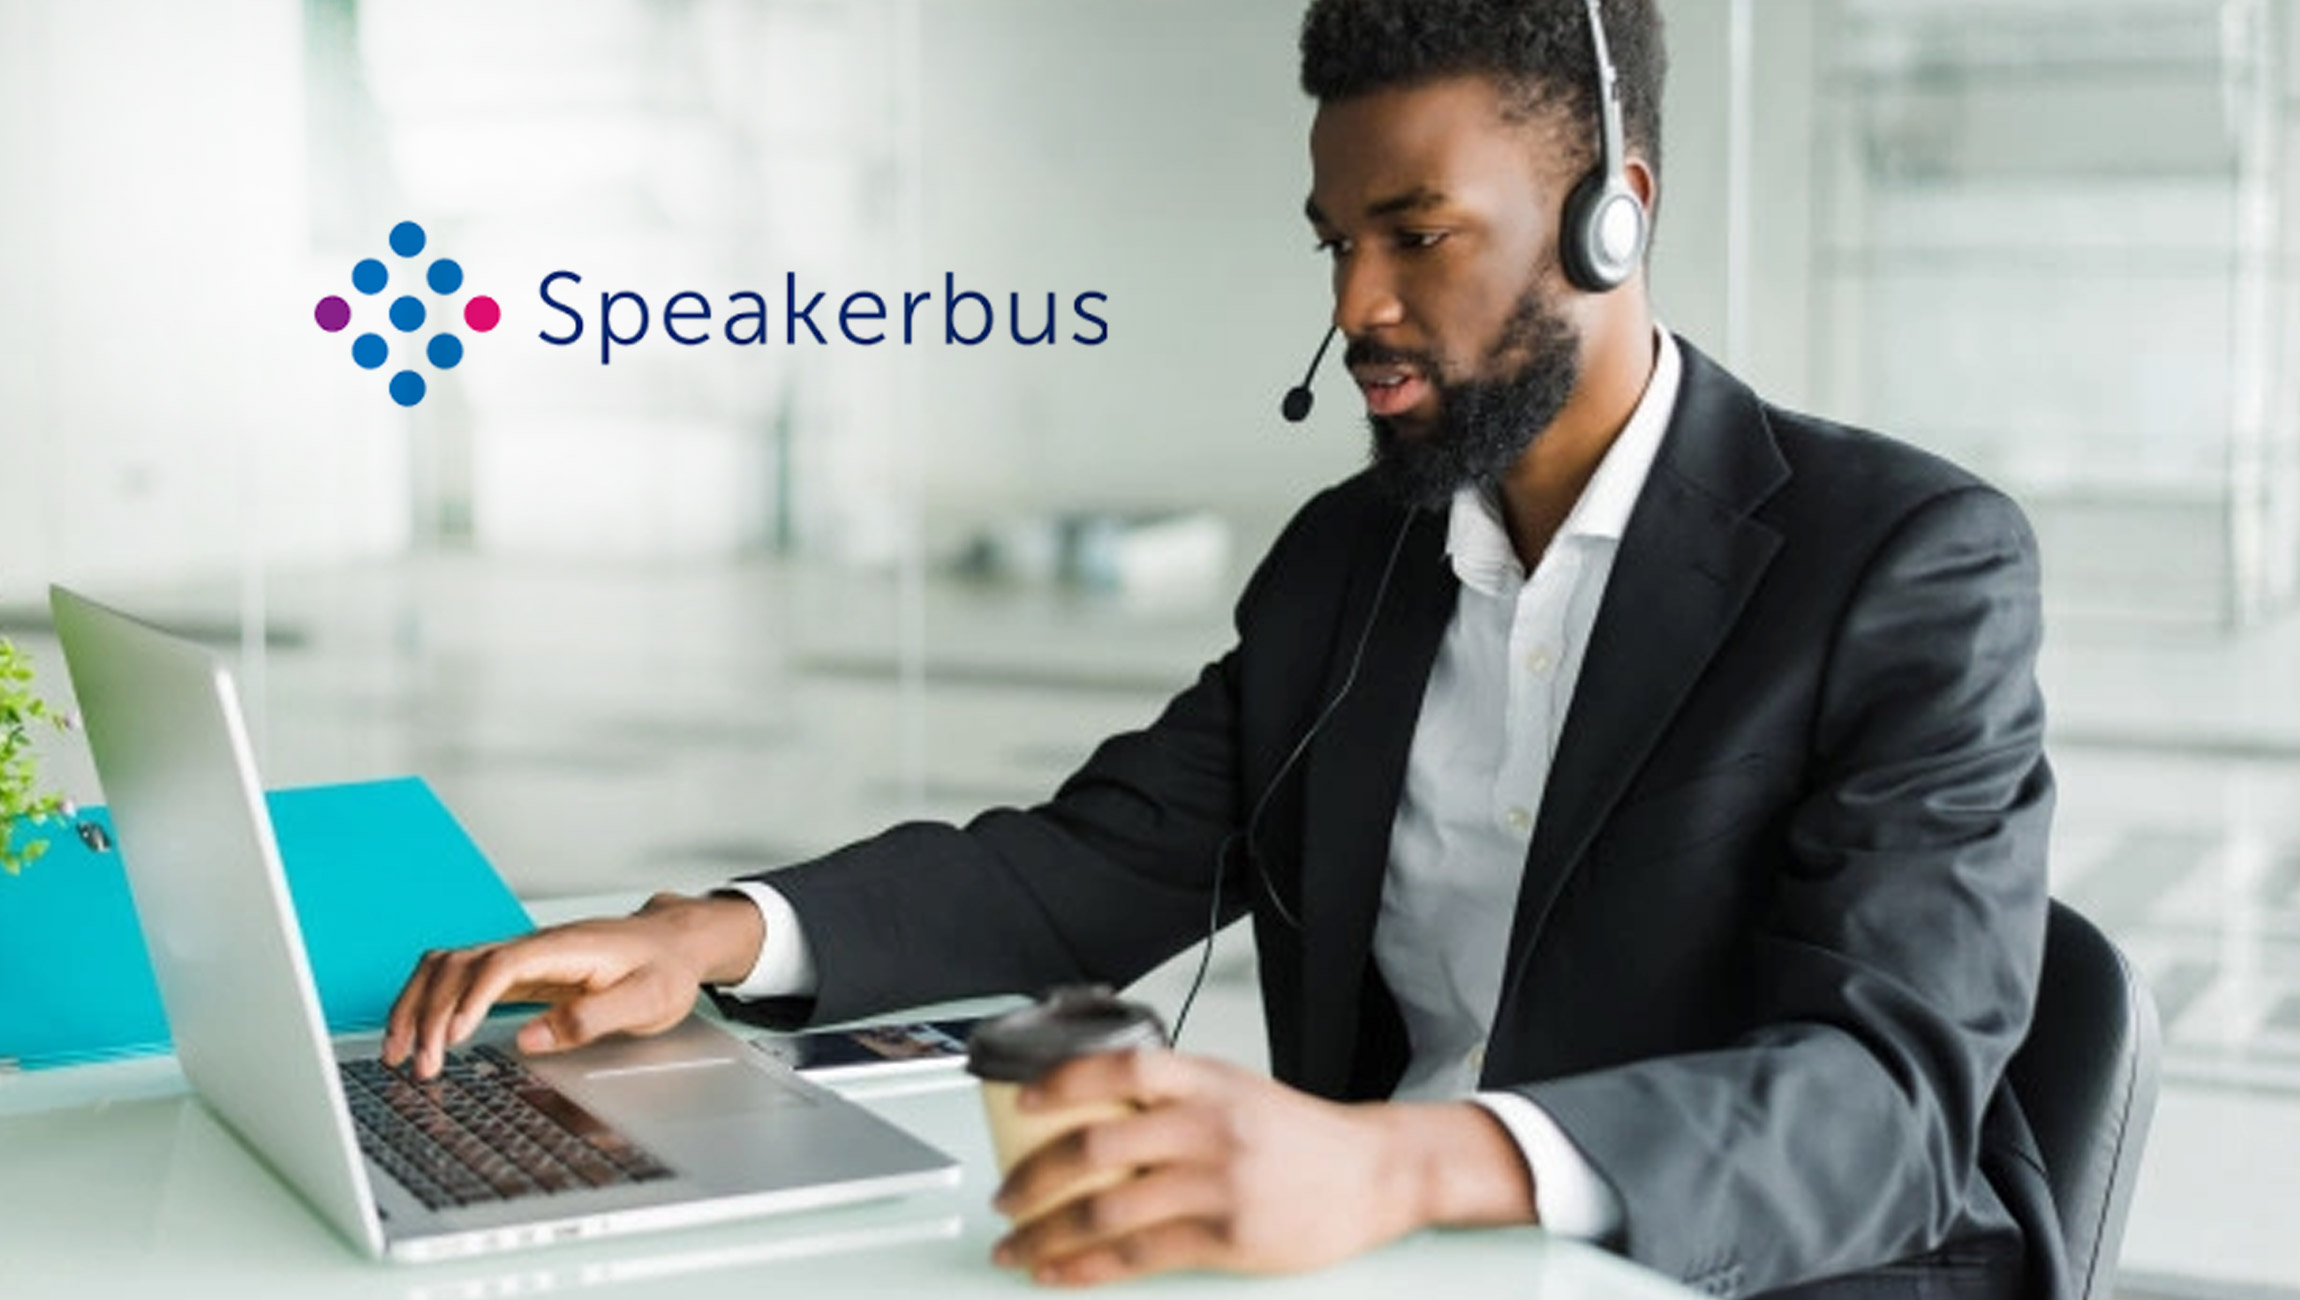 Speakerbus Announces CADENCE – A cloud-based Digital Communications And Compliance Platform For The Global Financial Trading Community.